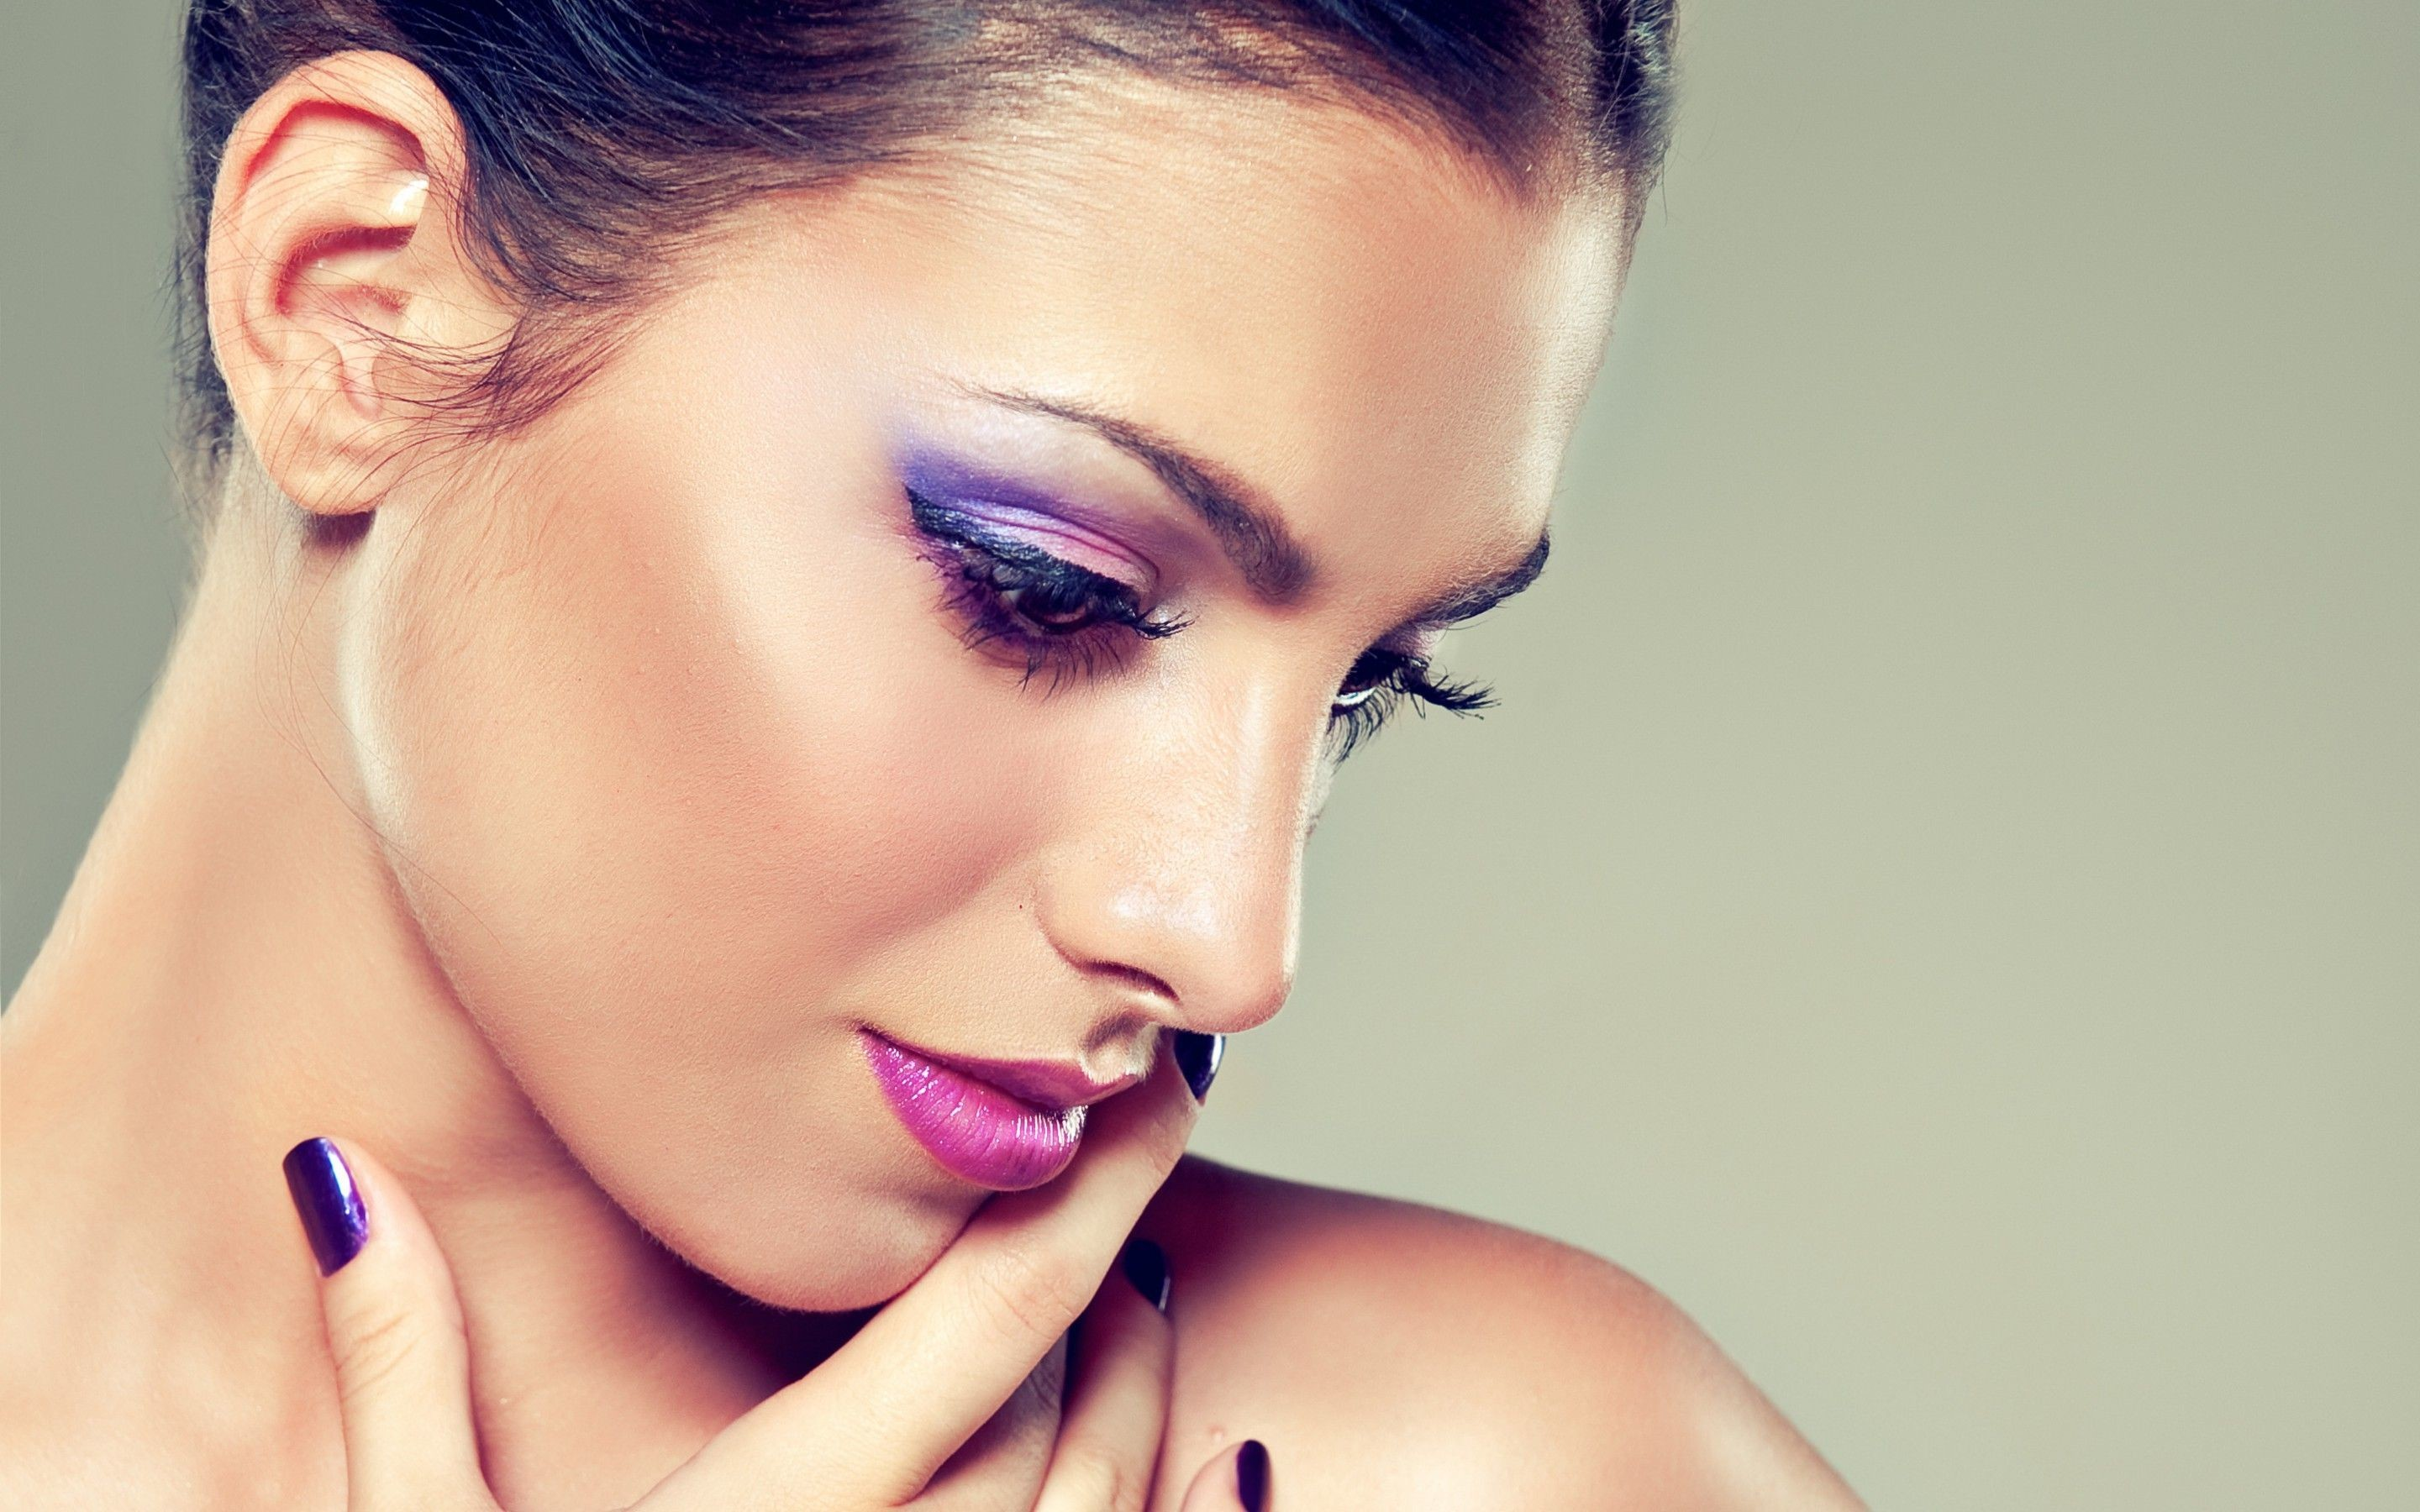 Res: 2880x1800, ... Beauty Salon 1920x1200 on Source · Makeup HD Wallpaper HD Wallpapers  Background Images Photos